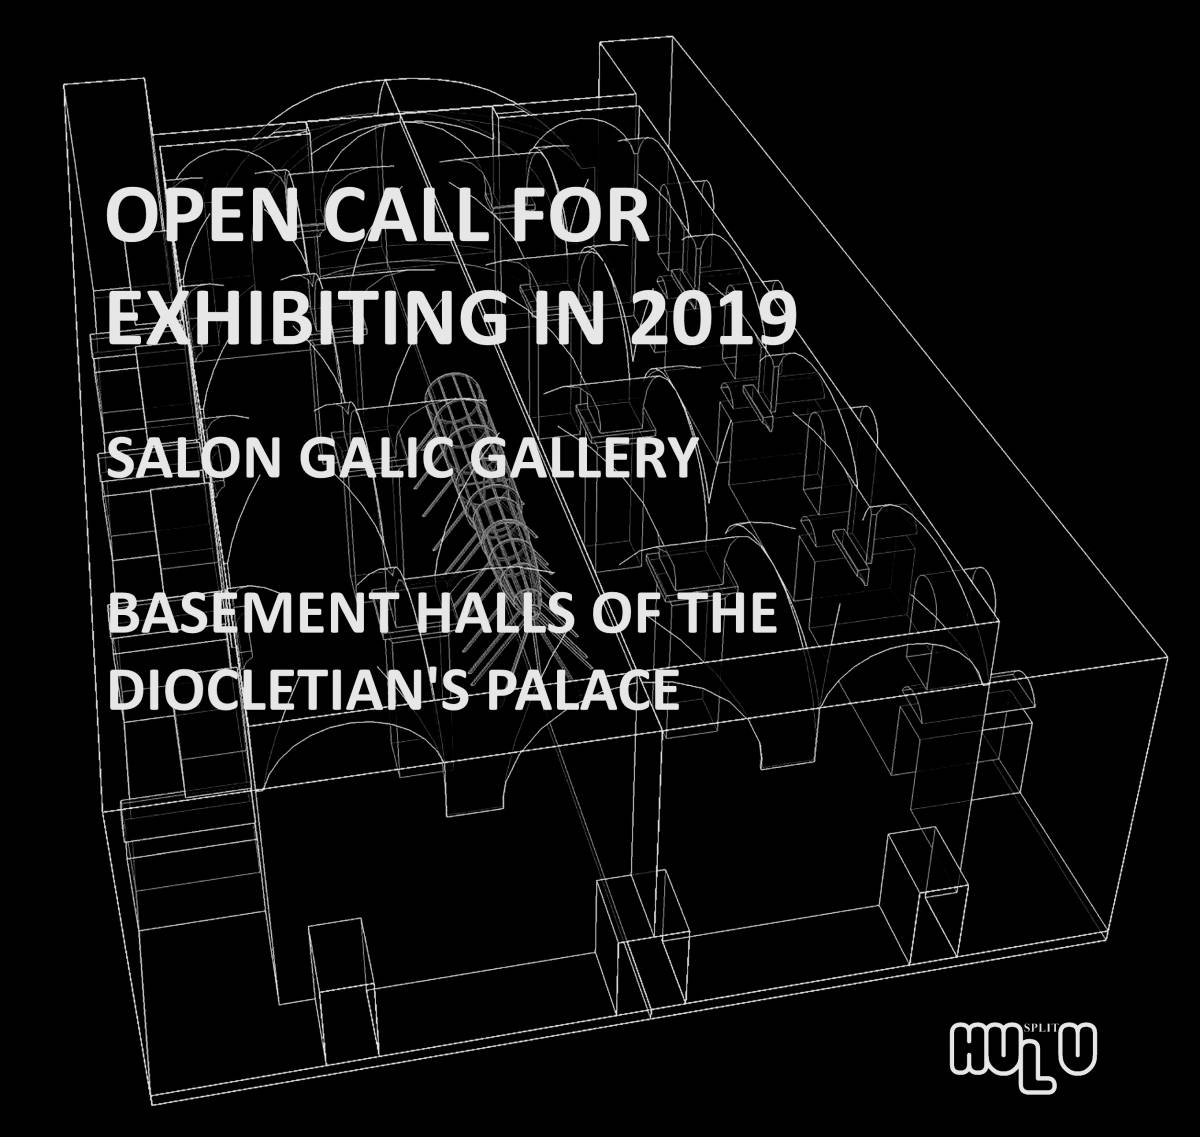 OPEN CALL FOR EXHIBITING in 2019